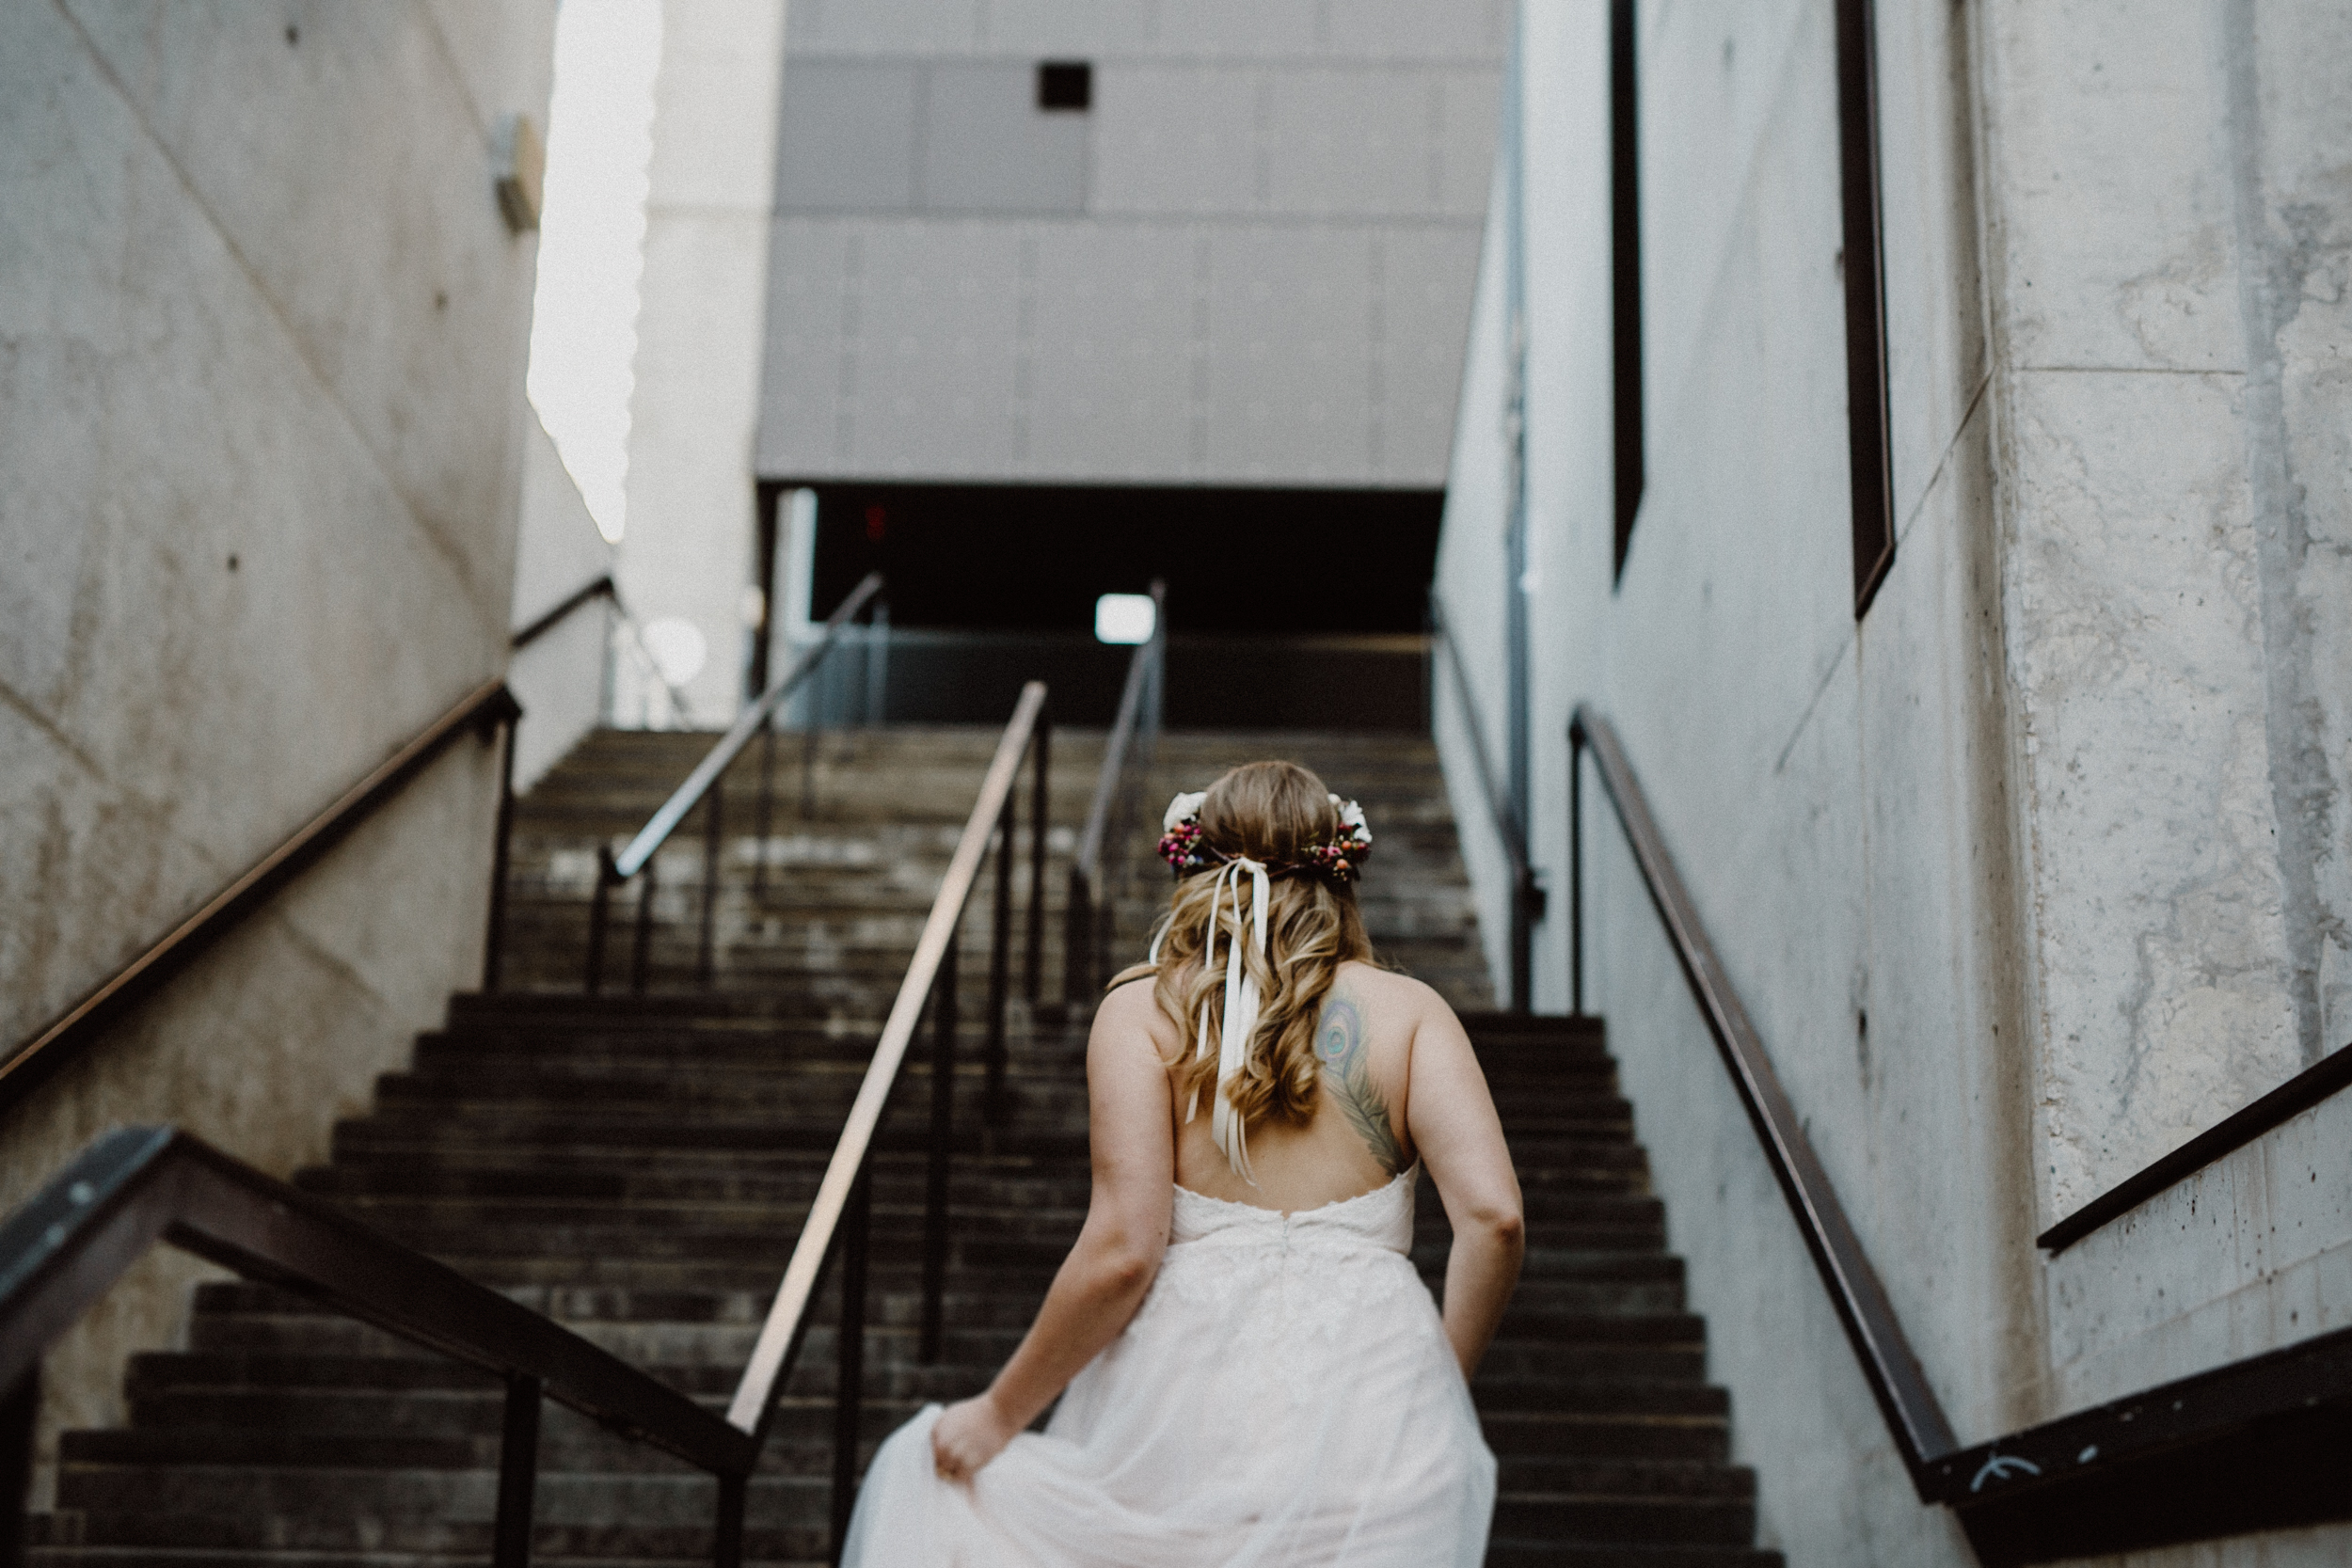 downtown-austin-bridals-erin-9.jpg